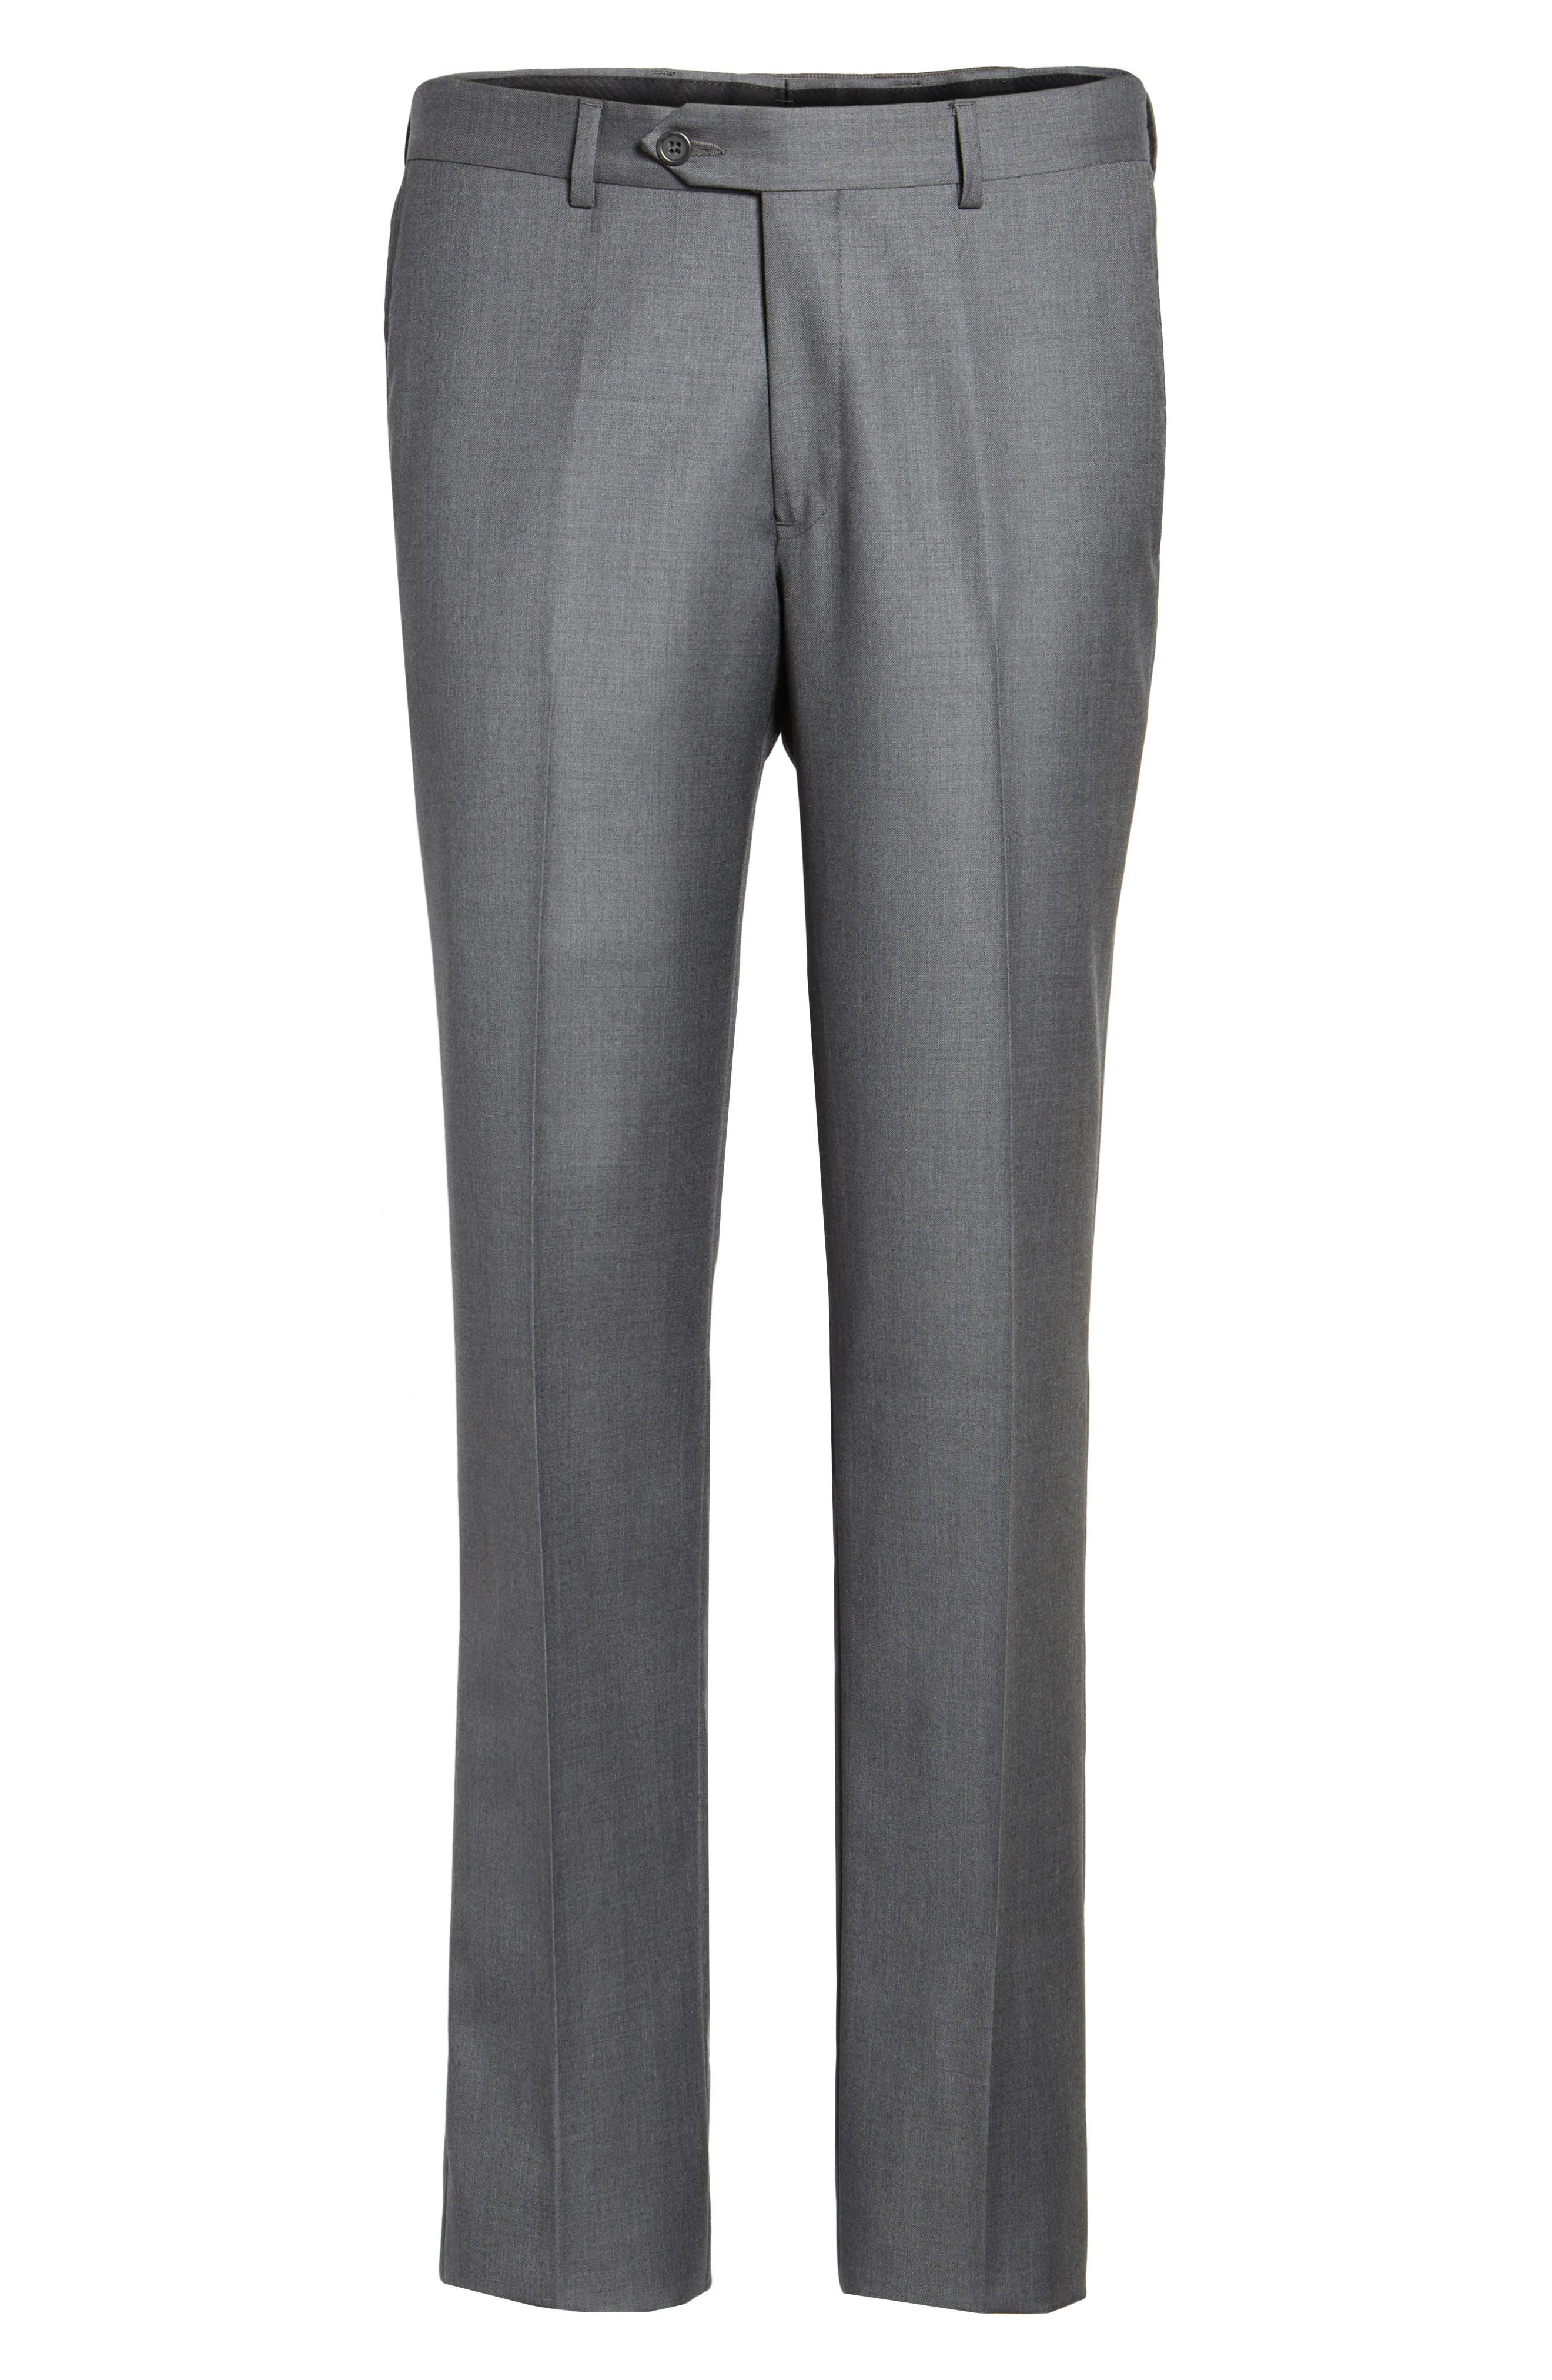 Flat Front Solid Wool Trousers,                             Alternate thumbnail 31, color,